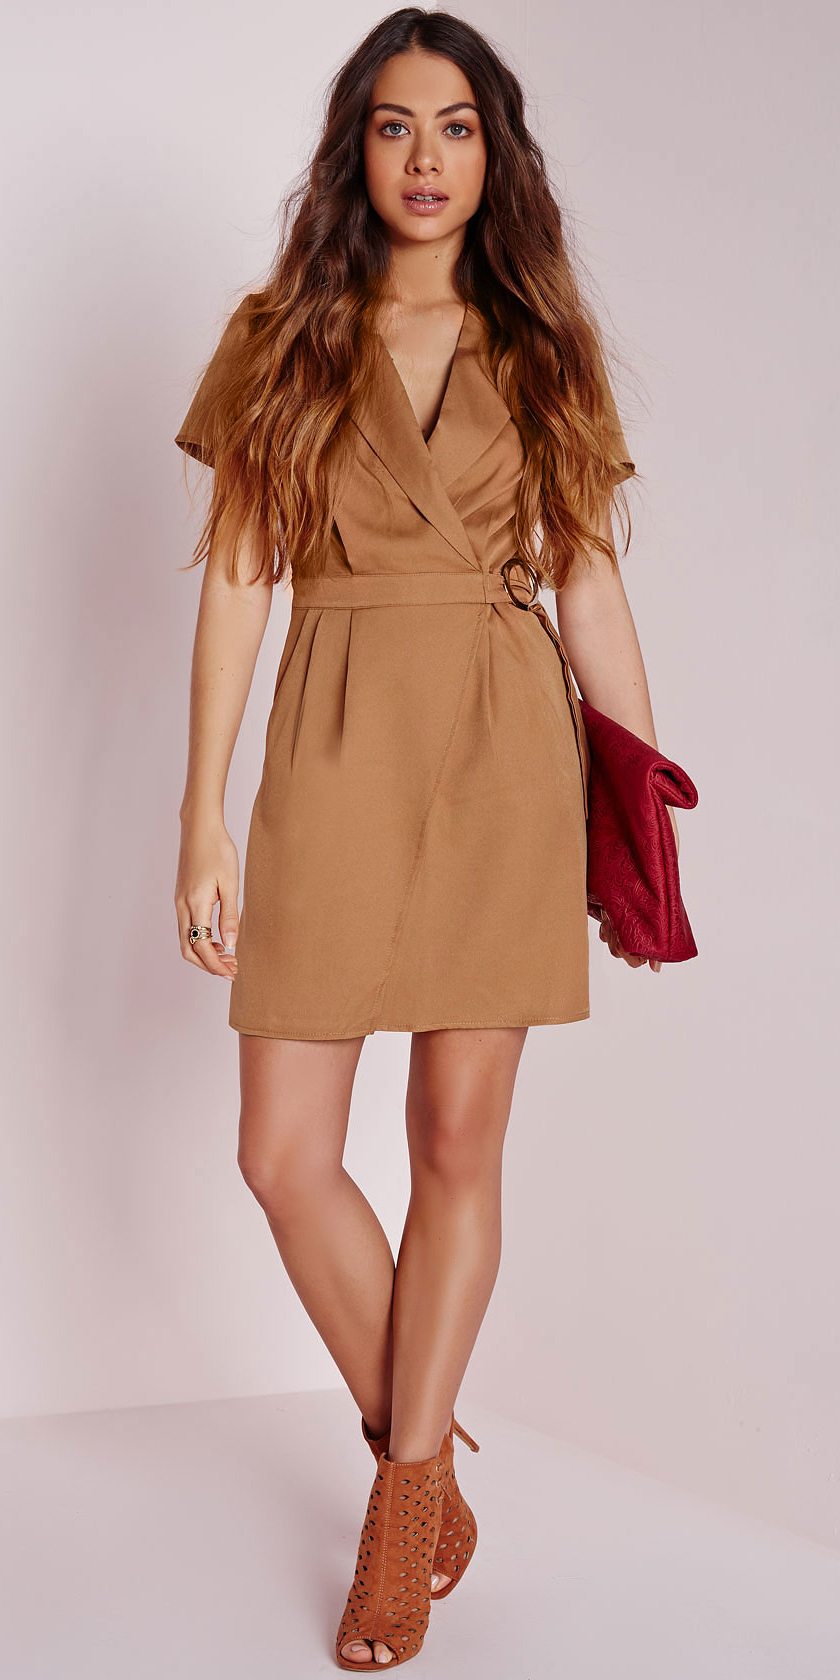 camel-dress-wrap-mini-cognac-shoe-booties-red-bag-clutch-hairr-spring-summer-dinner.jpeg